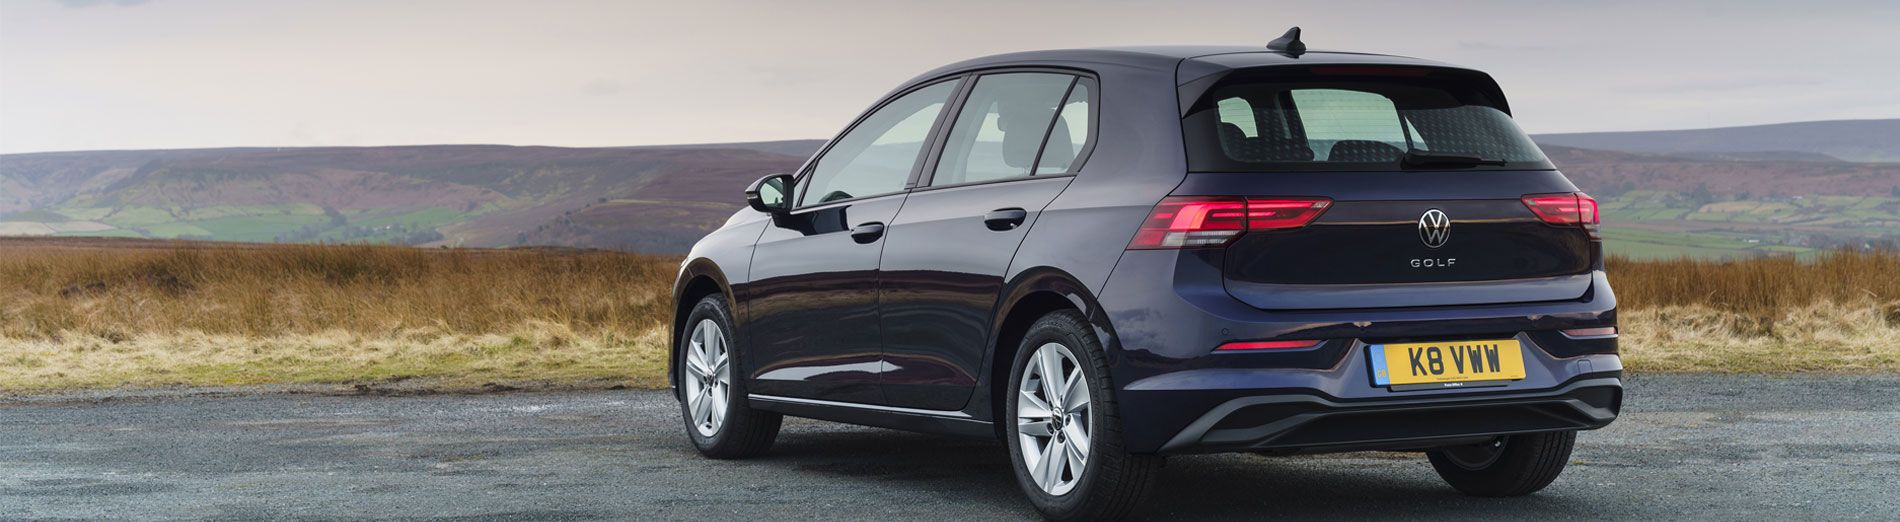 1.0L TSI Engine Comes to New Volkswagen Golf 8 Range